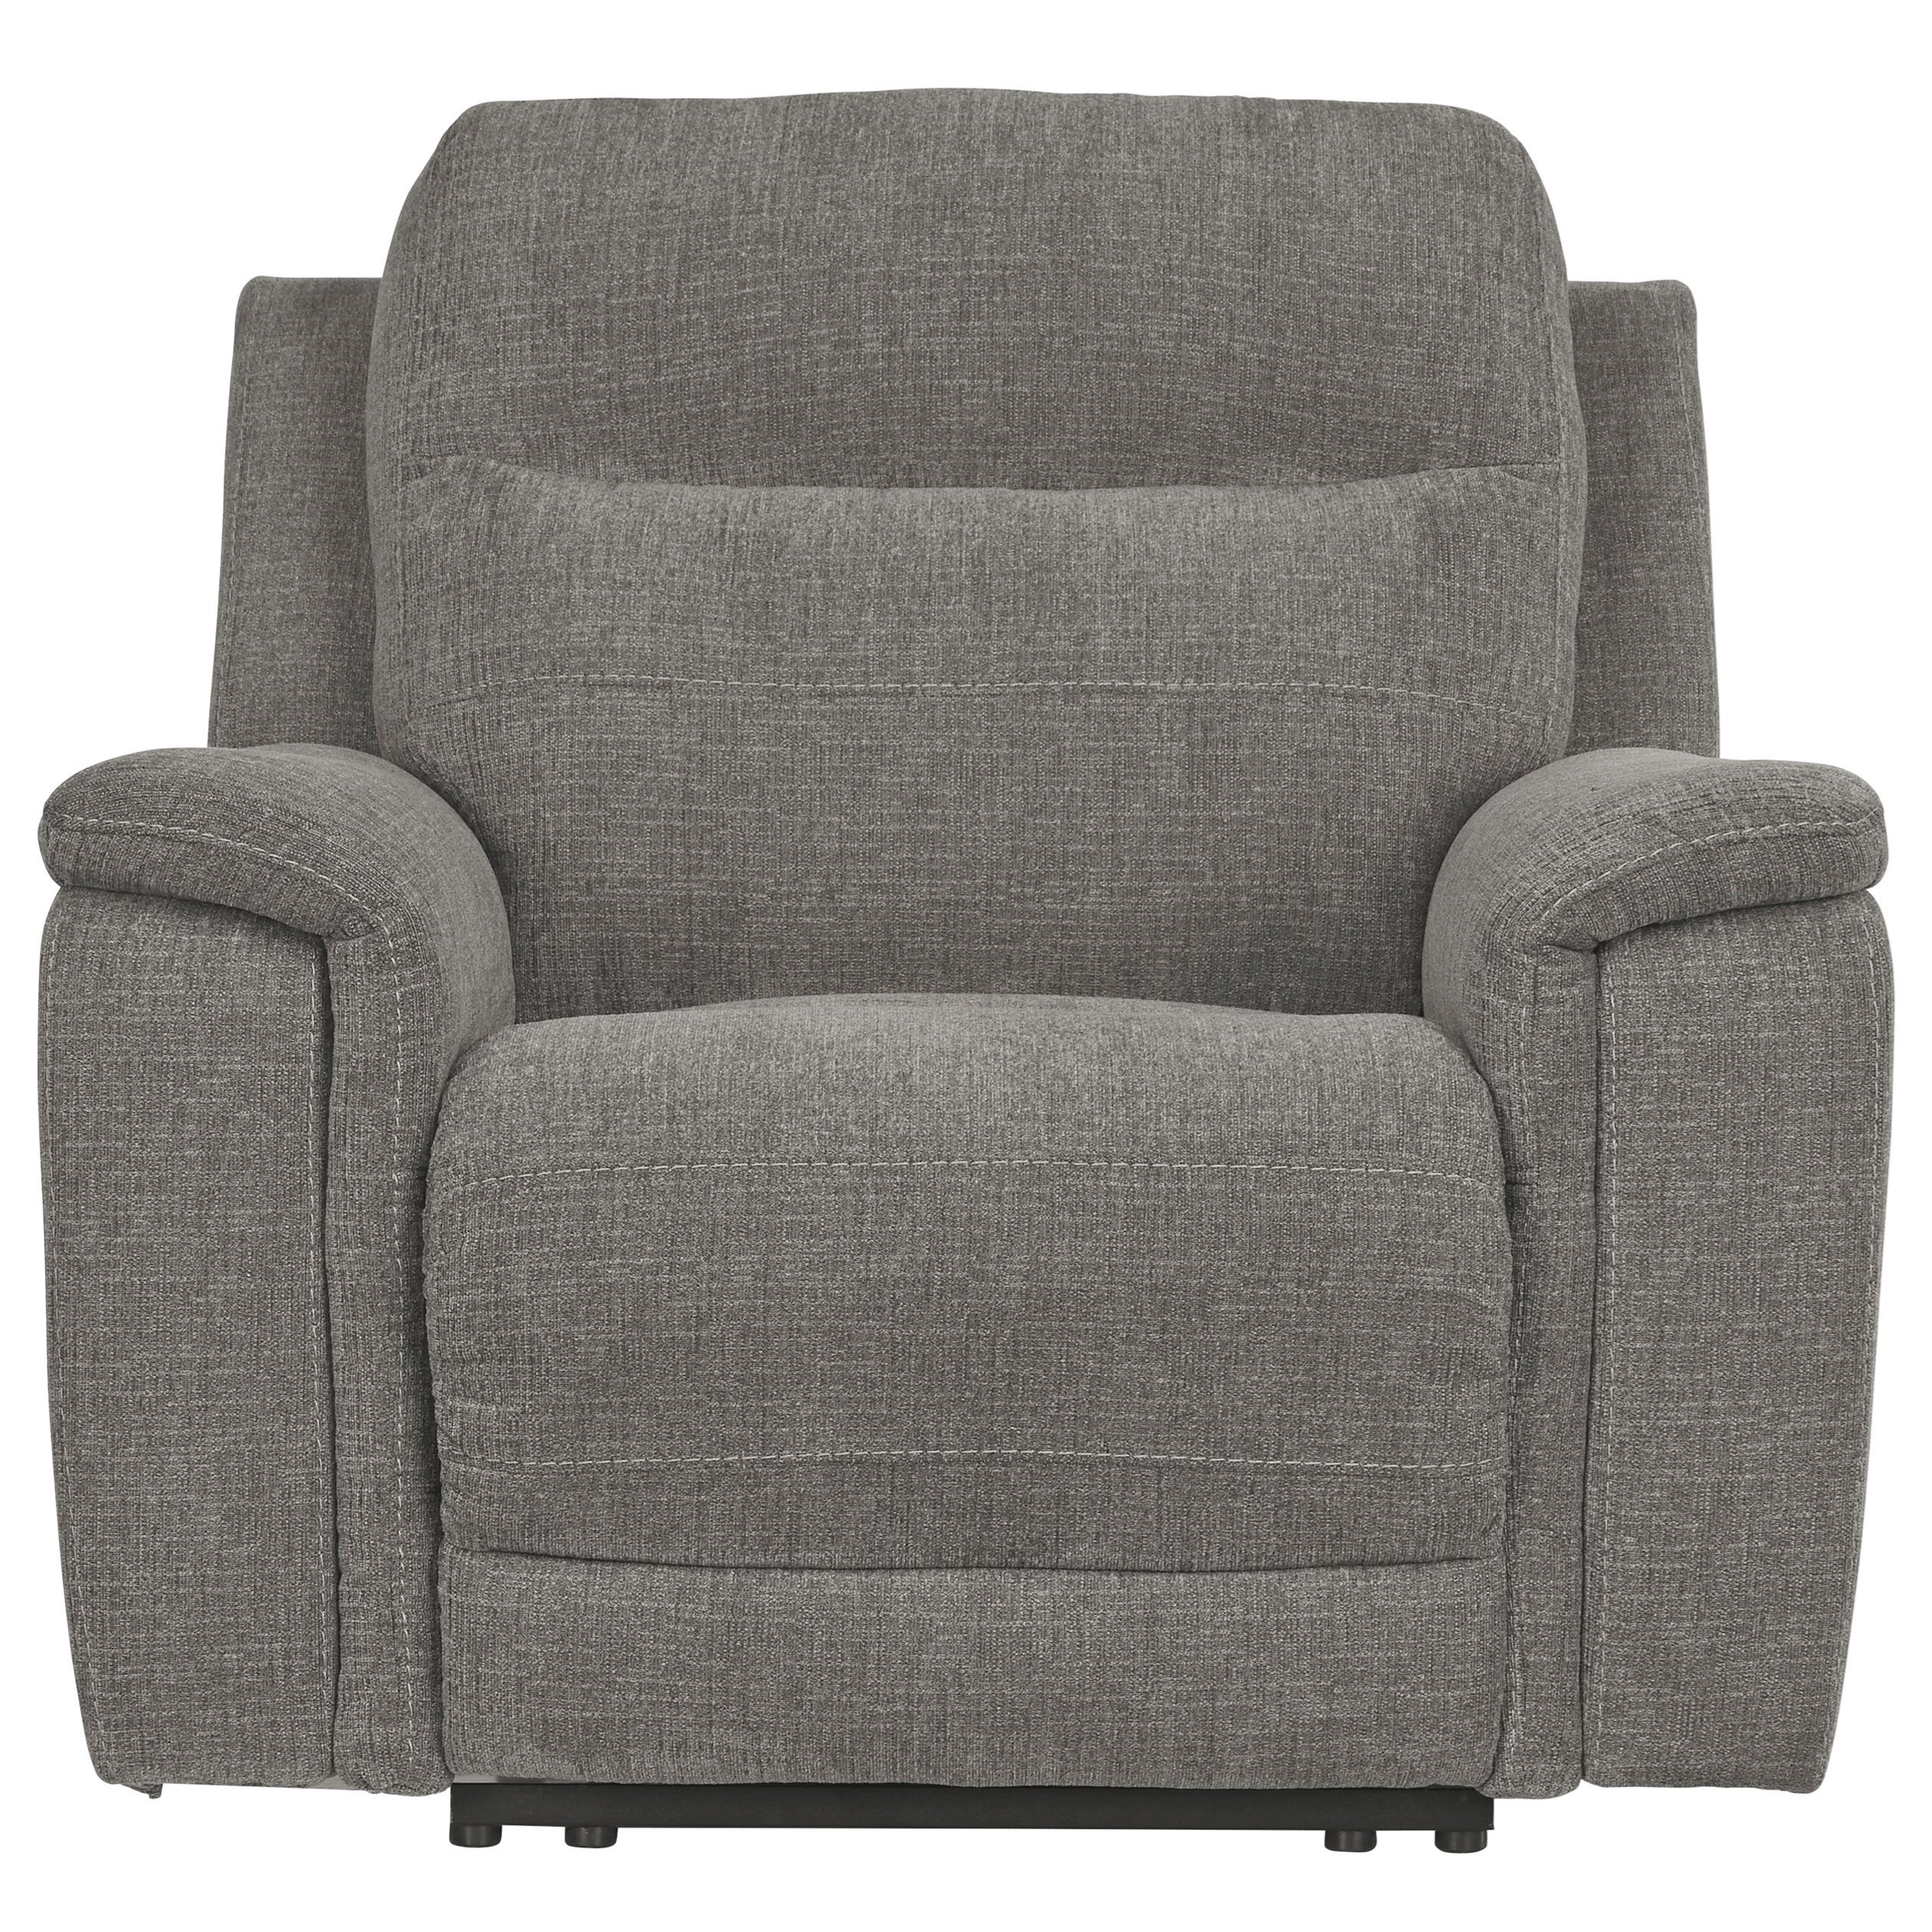 Mouttrie Power Recliner w/ Adjustable Headrest by Ashley (Signature Design) at Johnny Janosik